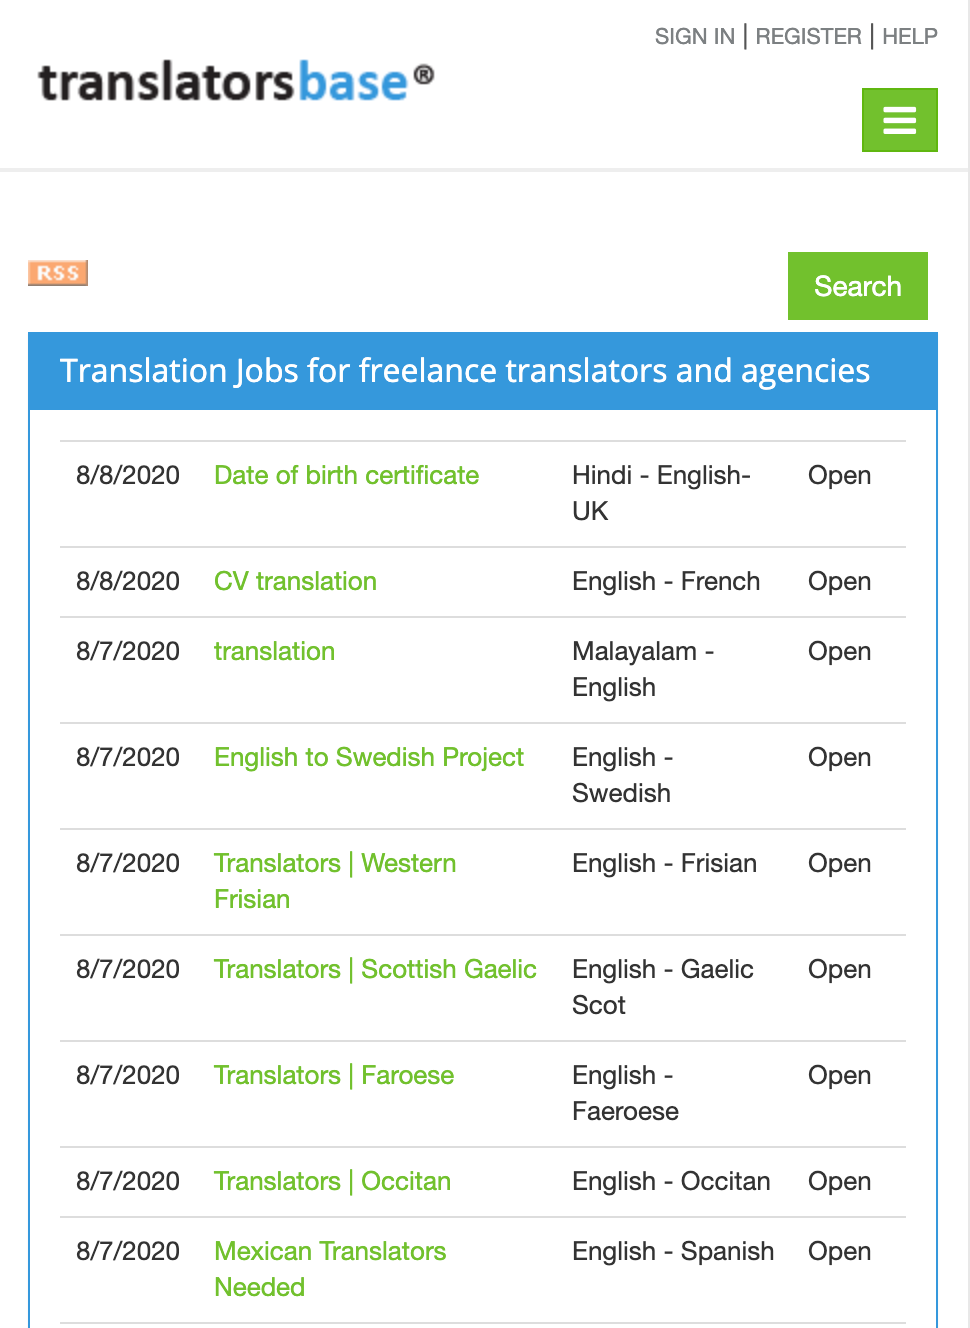 TranslatorsBase Job Boards